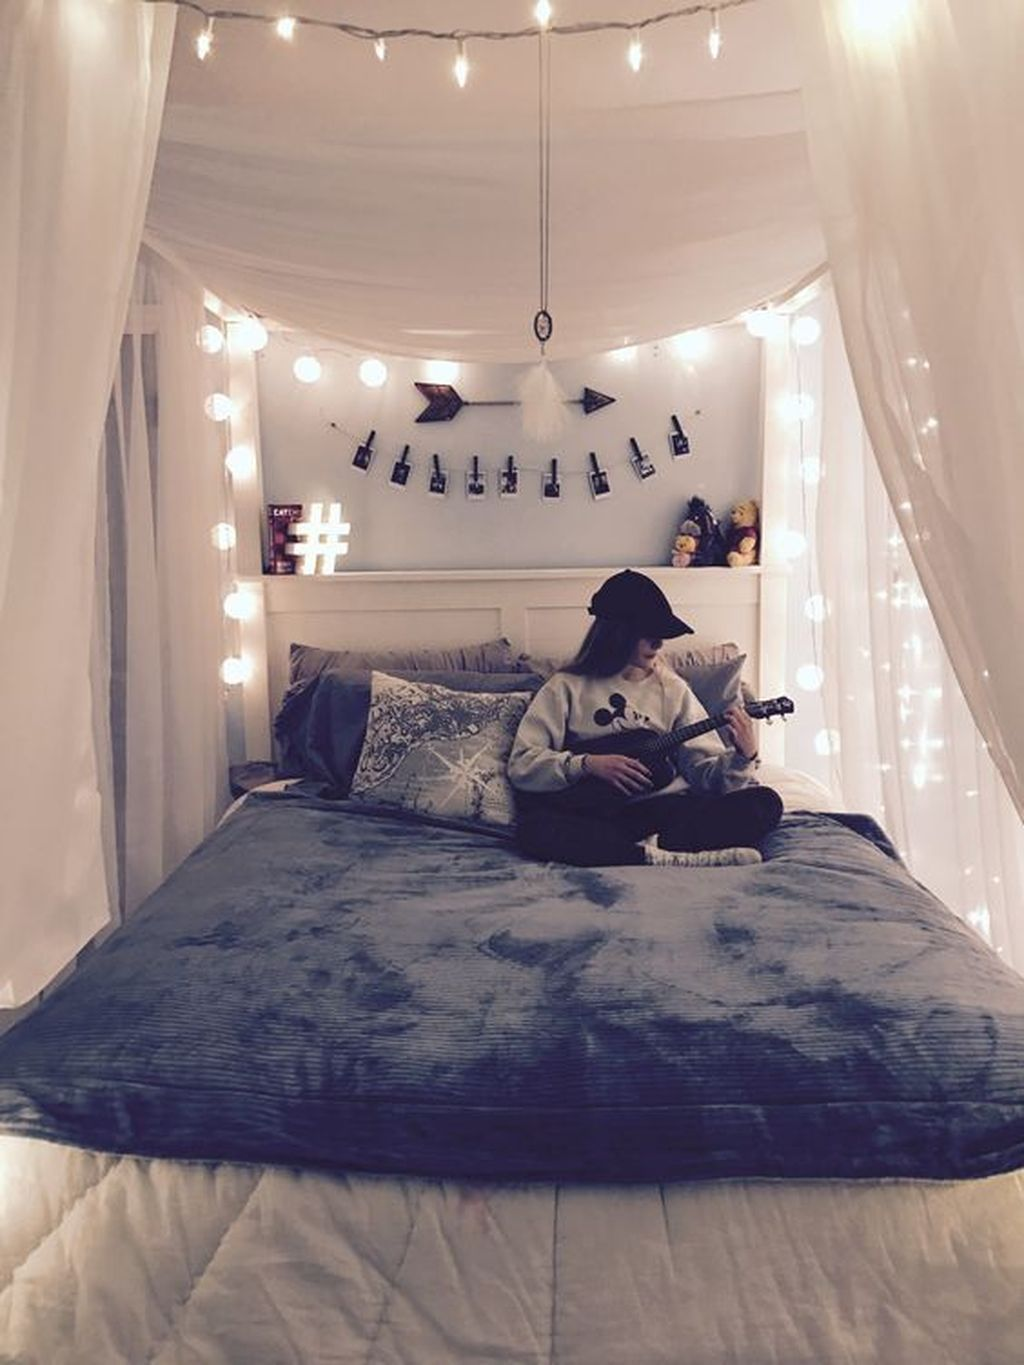 Ordinaire Awesome 37 Cool Teenage Girls Bedroom Ideas. More At  Http://dailypatio.com/2017/12/07/37 Cool Teenage Girls Bedroom Ideas/